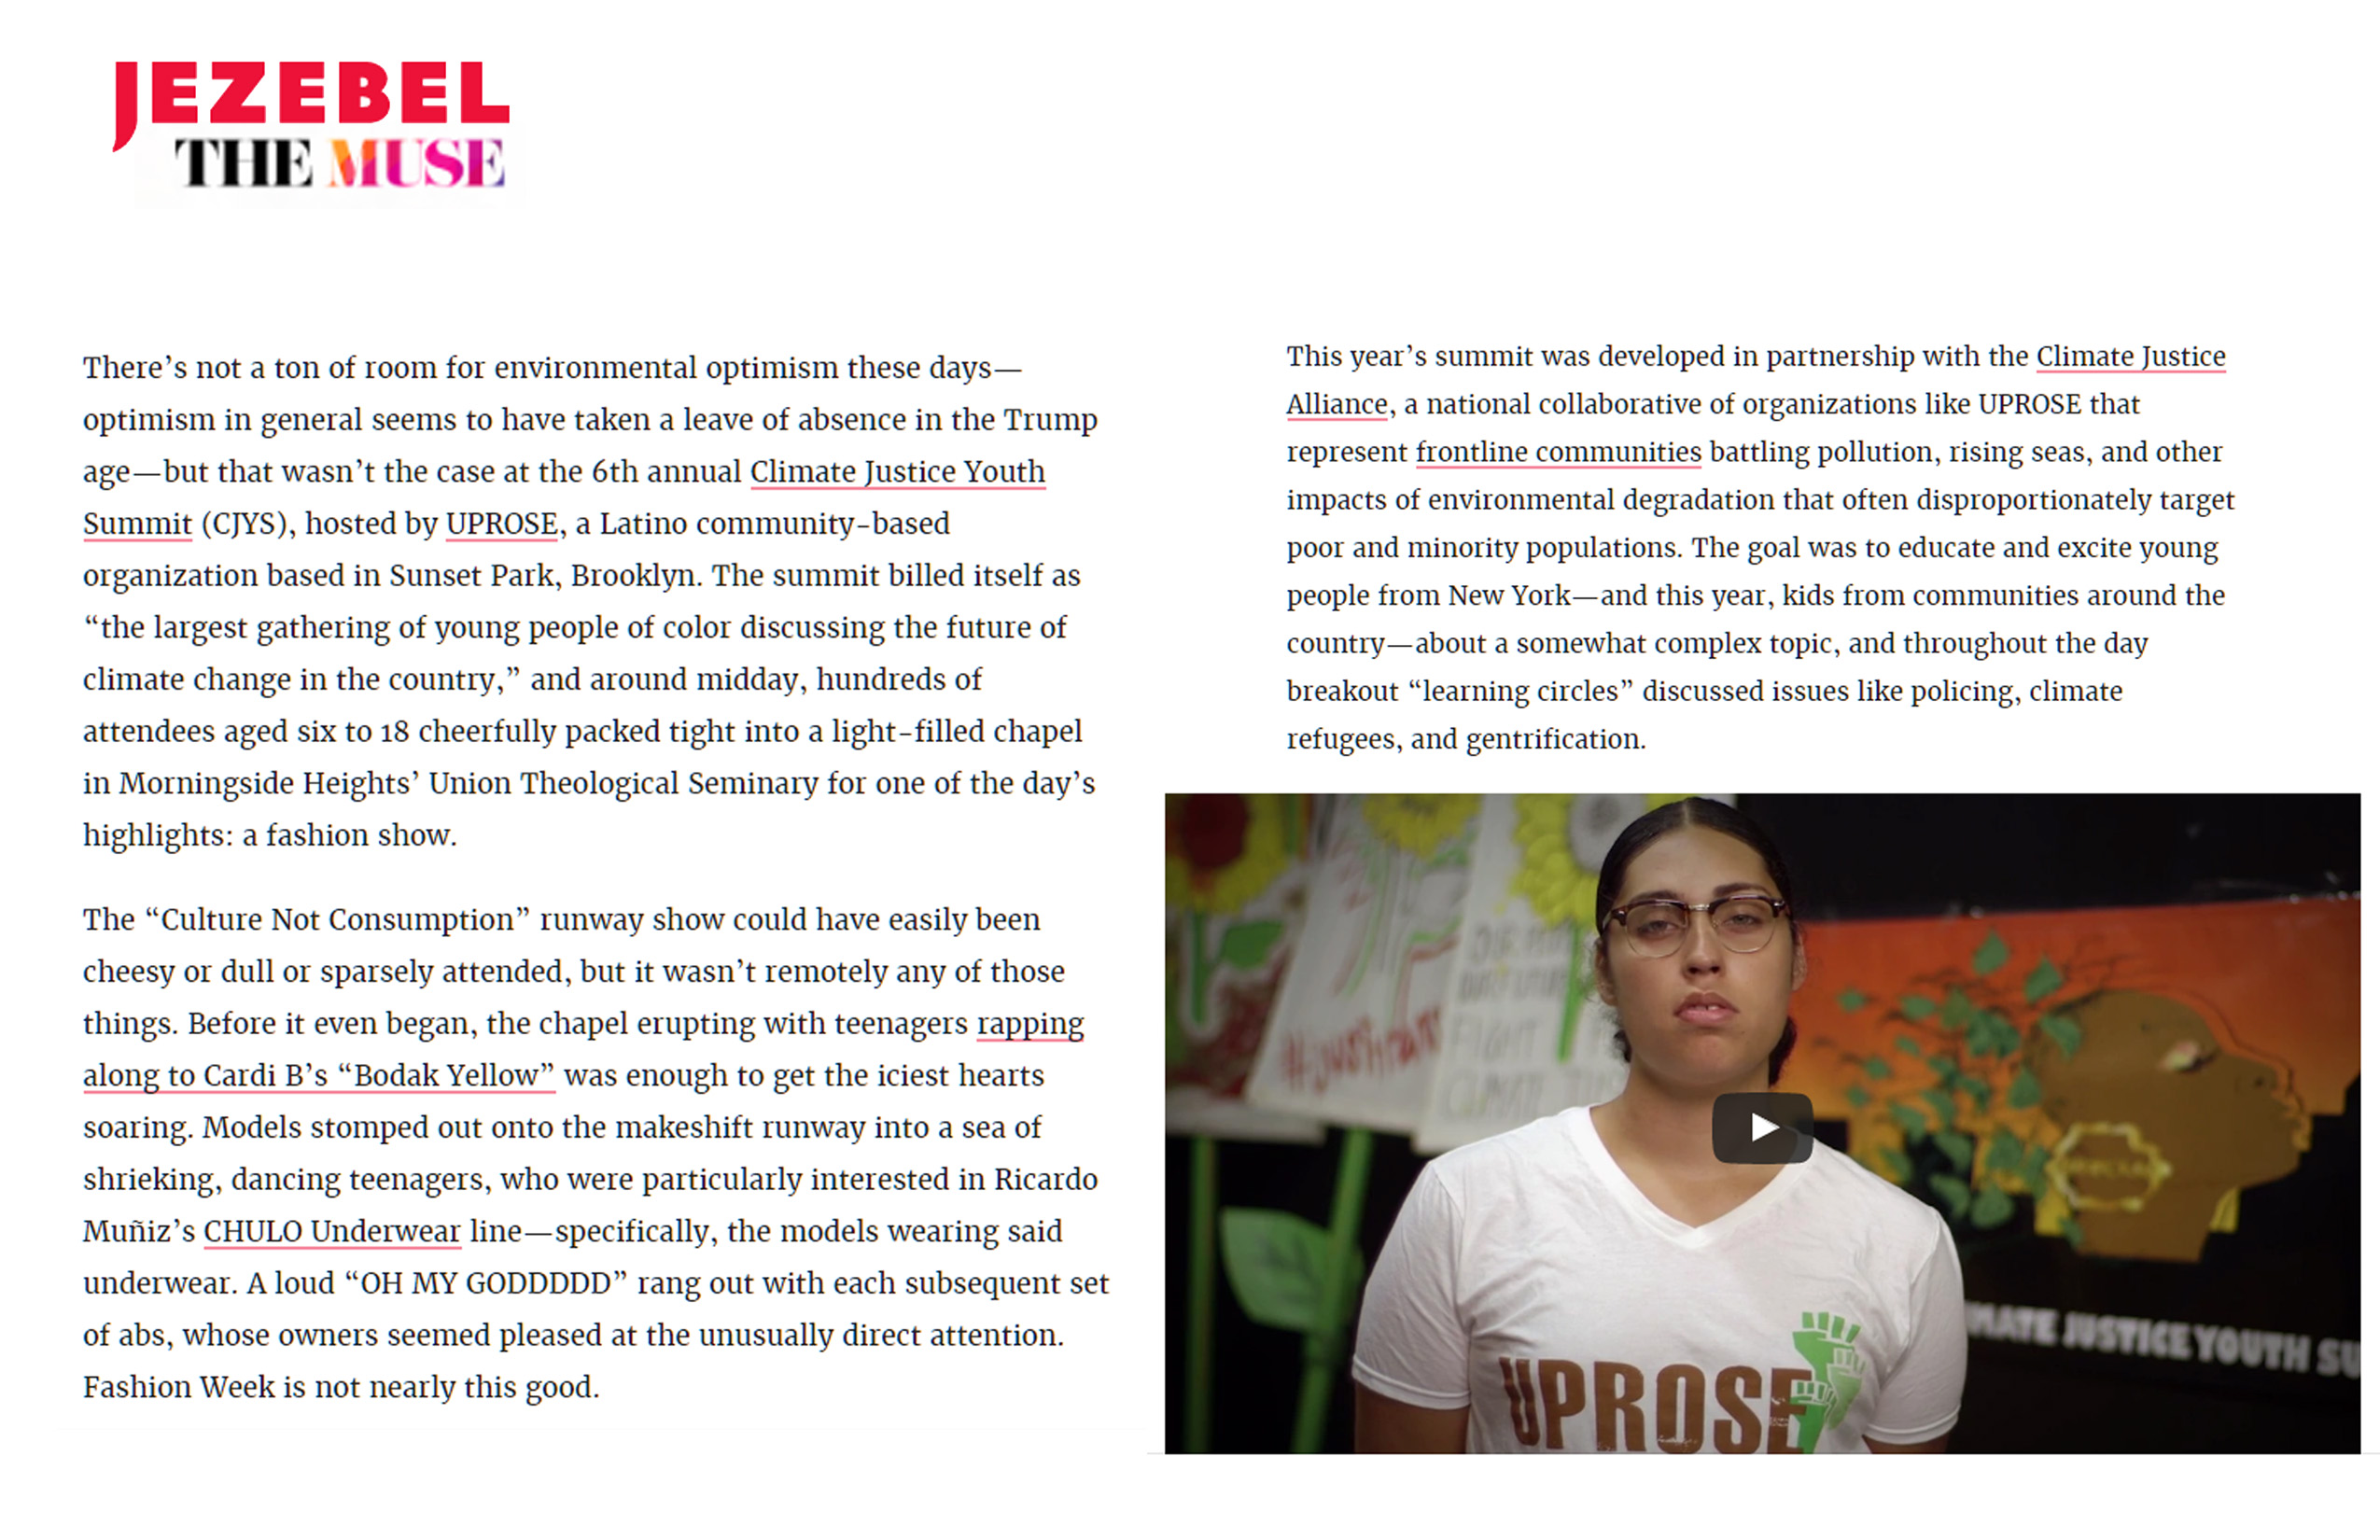 Jezebel The Muse Climate Justice Youth Summit Fashon Show article by E Shechet page 02